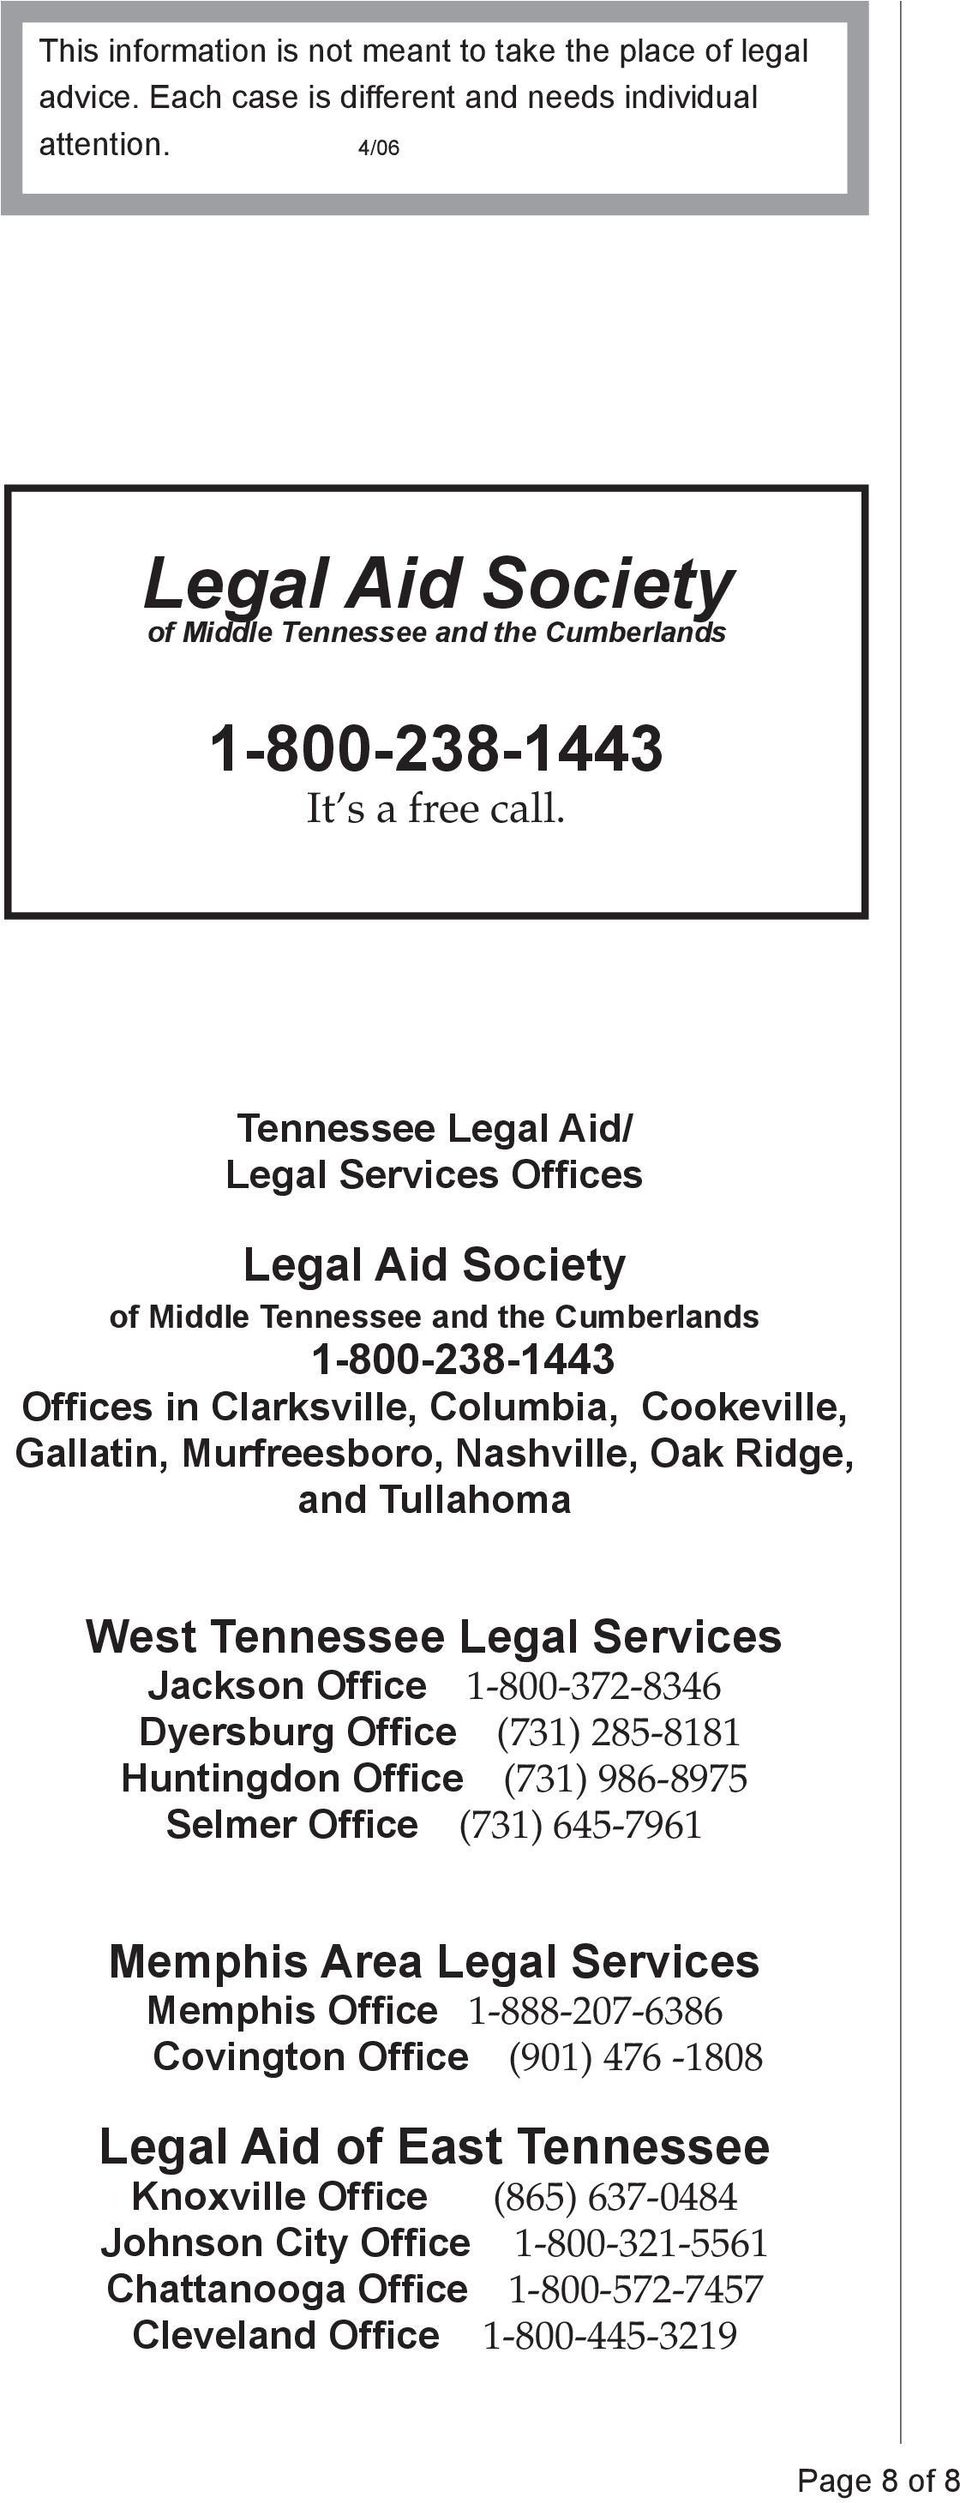 Tennessee Legal Aid/ Legal Services Offices Legal Aid Society of Middle Tennessee and the Cumberlands 1-800-238-1443 Offices in Clarksville, Columbia, Cookeville, Gallatin, Murfreesboro, Nashville,